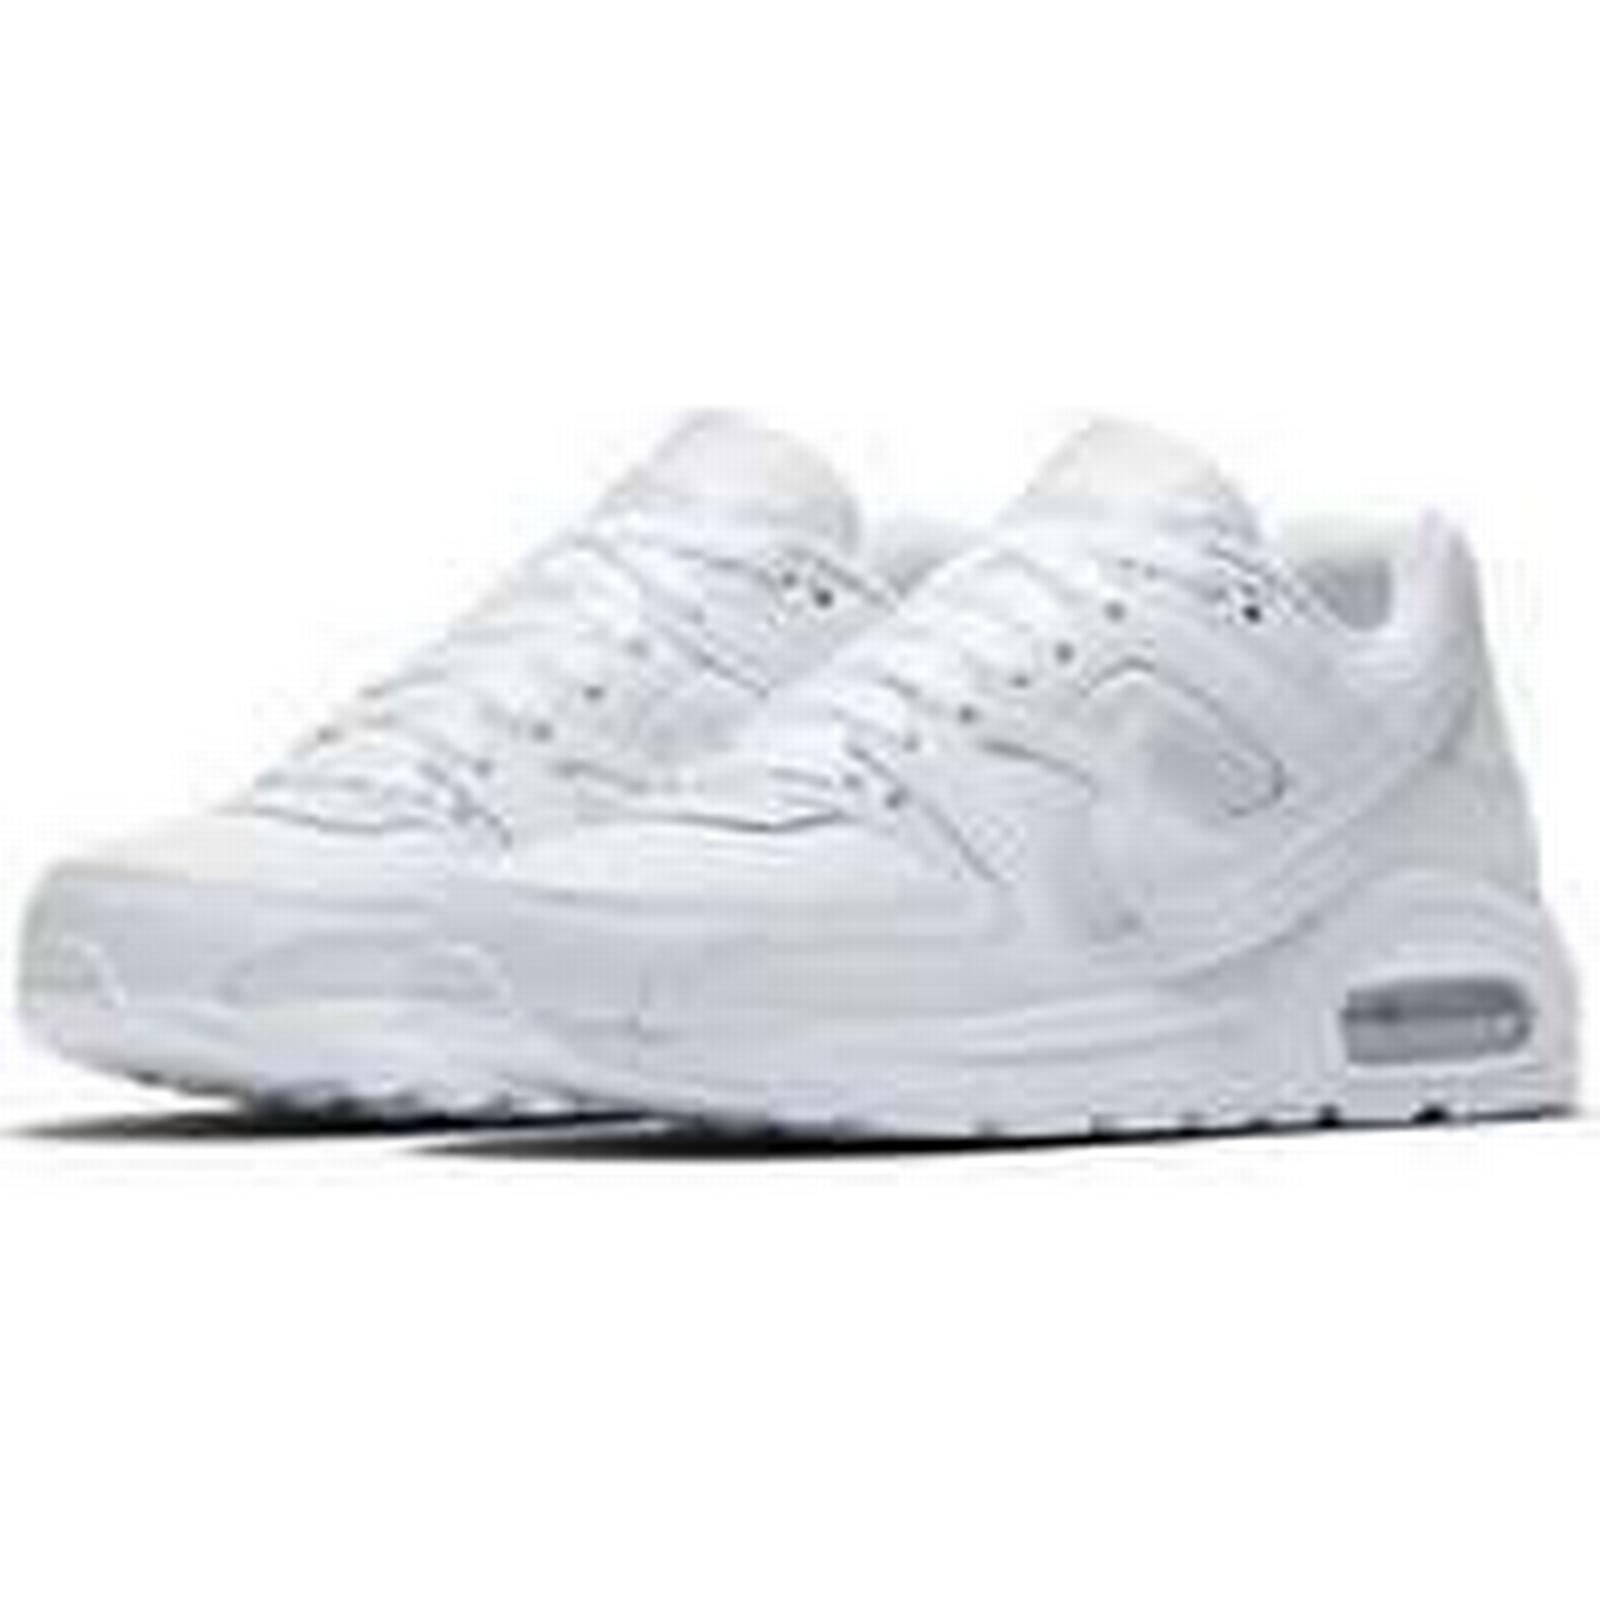 Spartoo.co.uk Command Nike Boys' Air Max Command Spartoo.co.uk Flex (GS) Running Shoe 844346 women's Shoes (Trainers) in White 6c5040